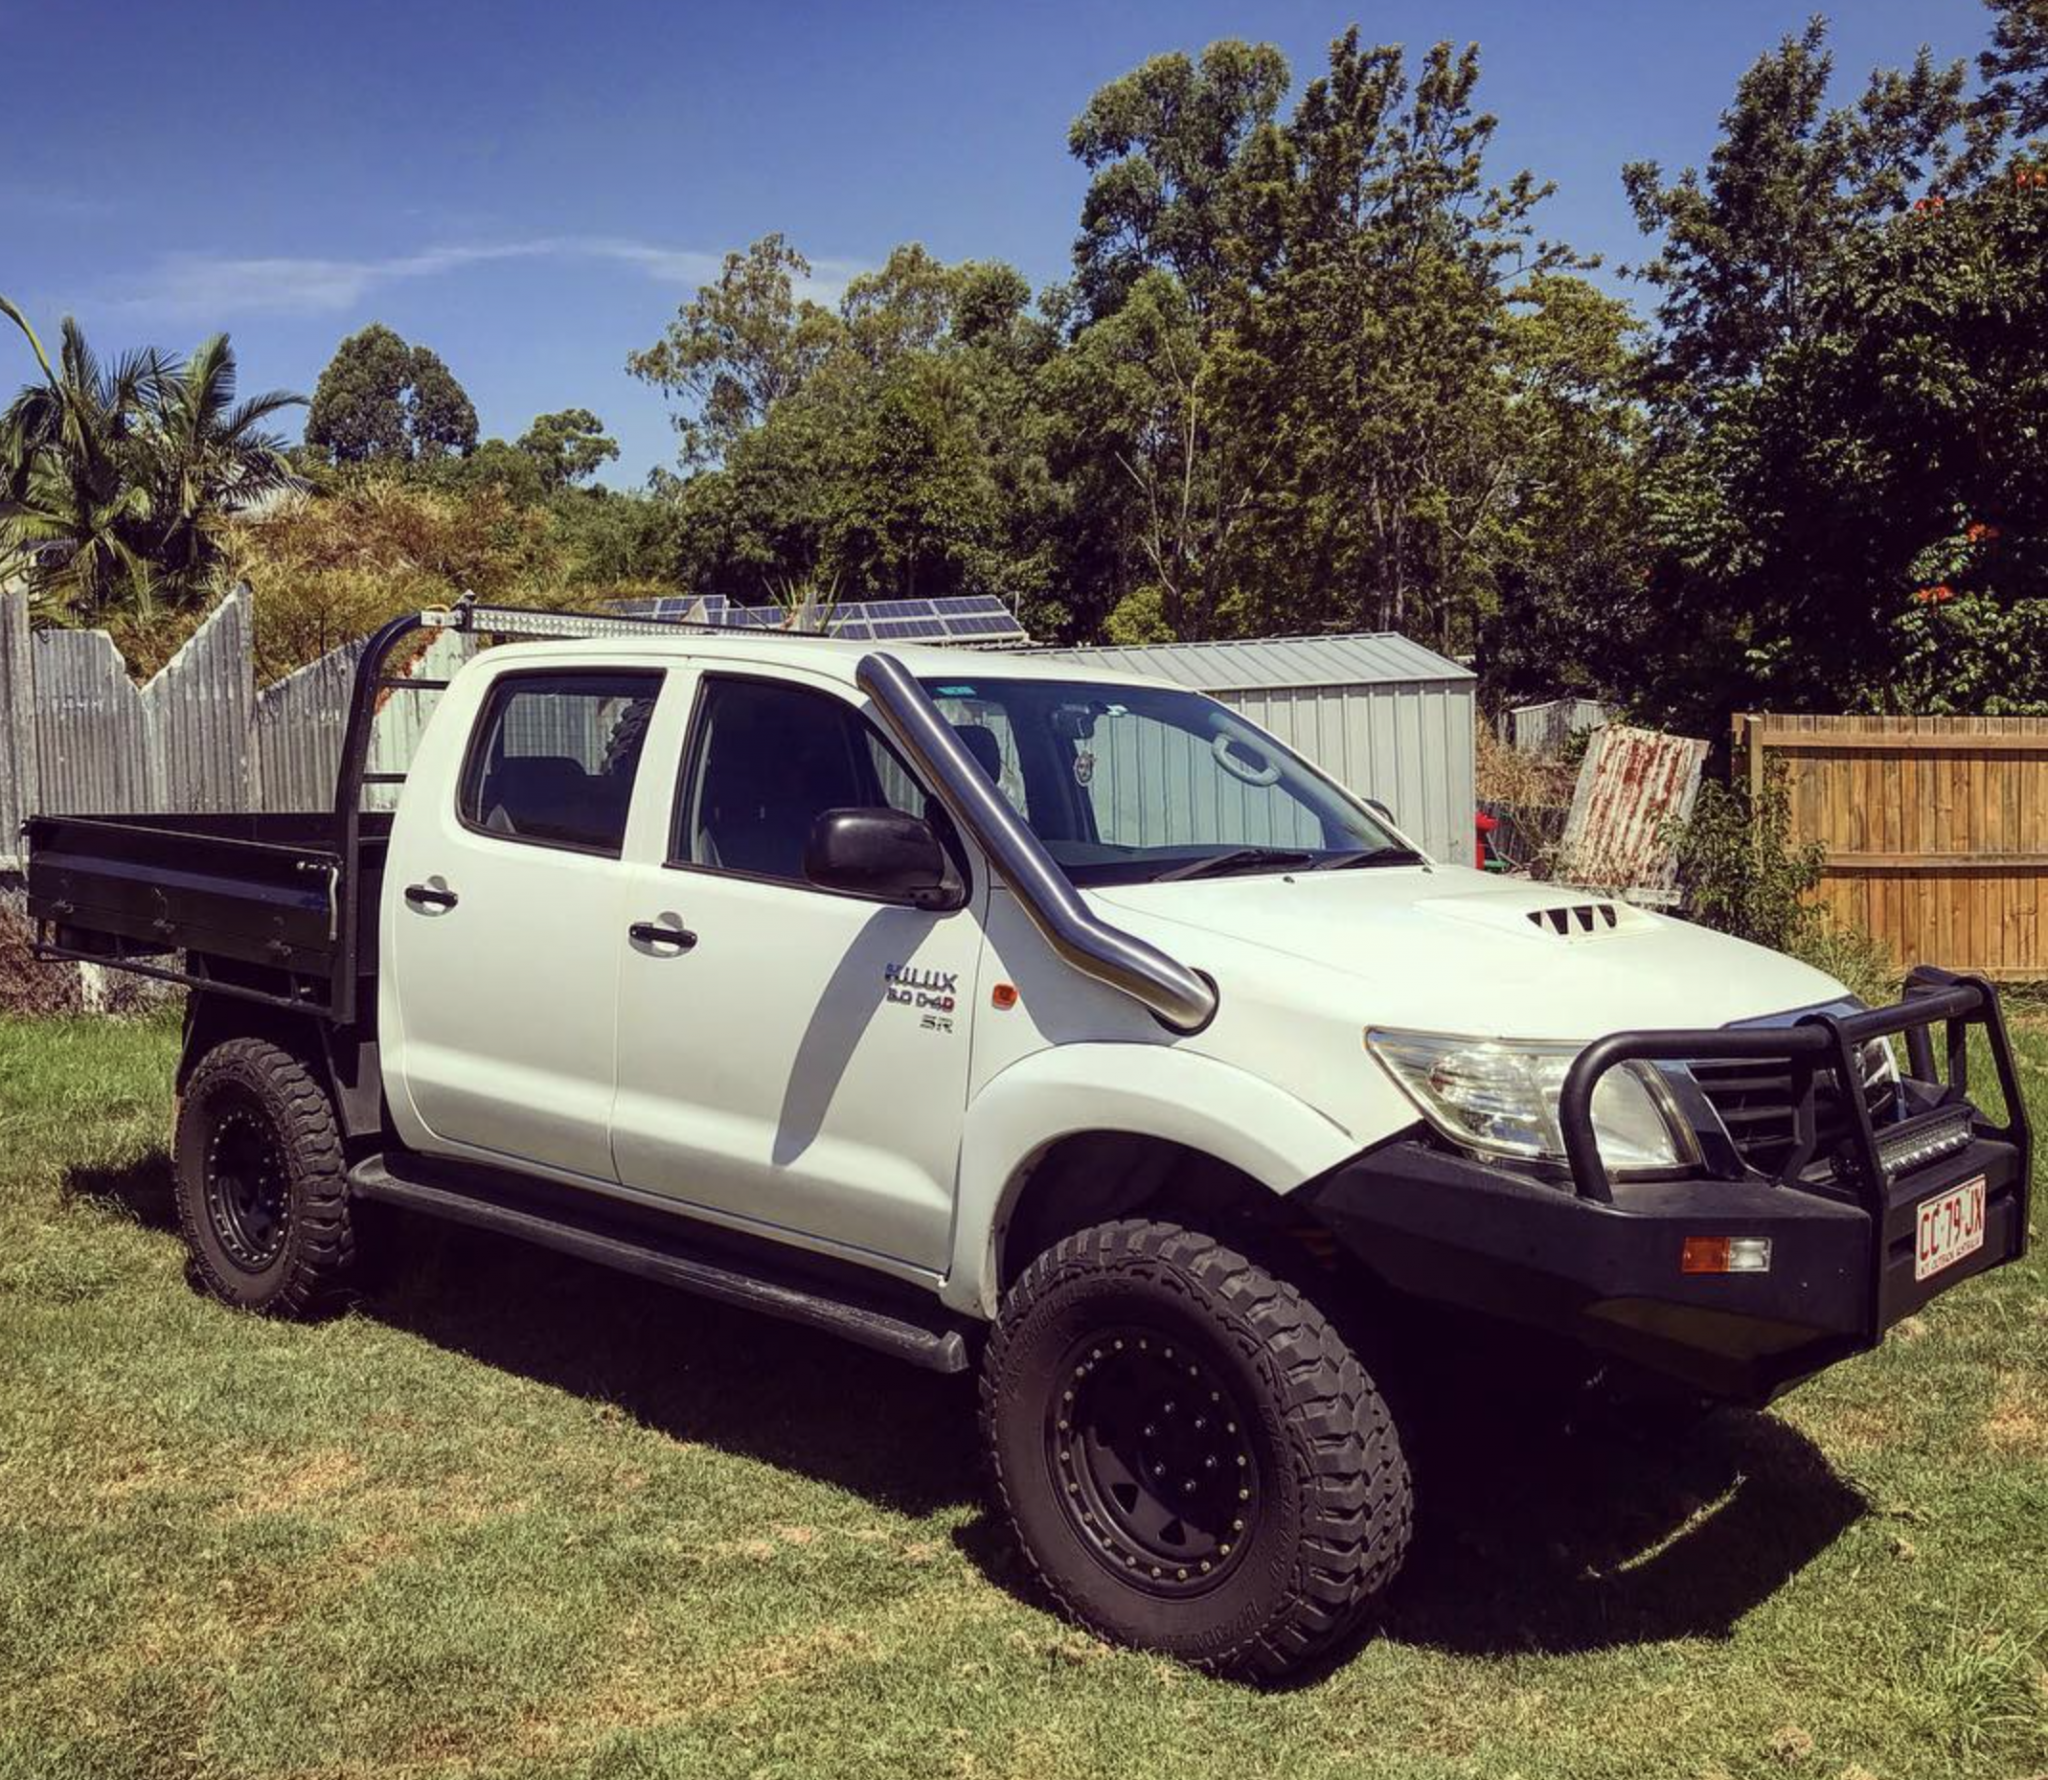 N70 Hilux review